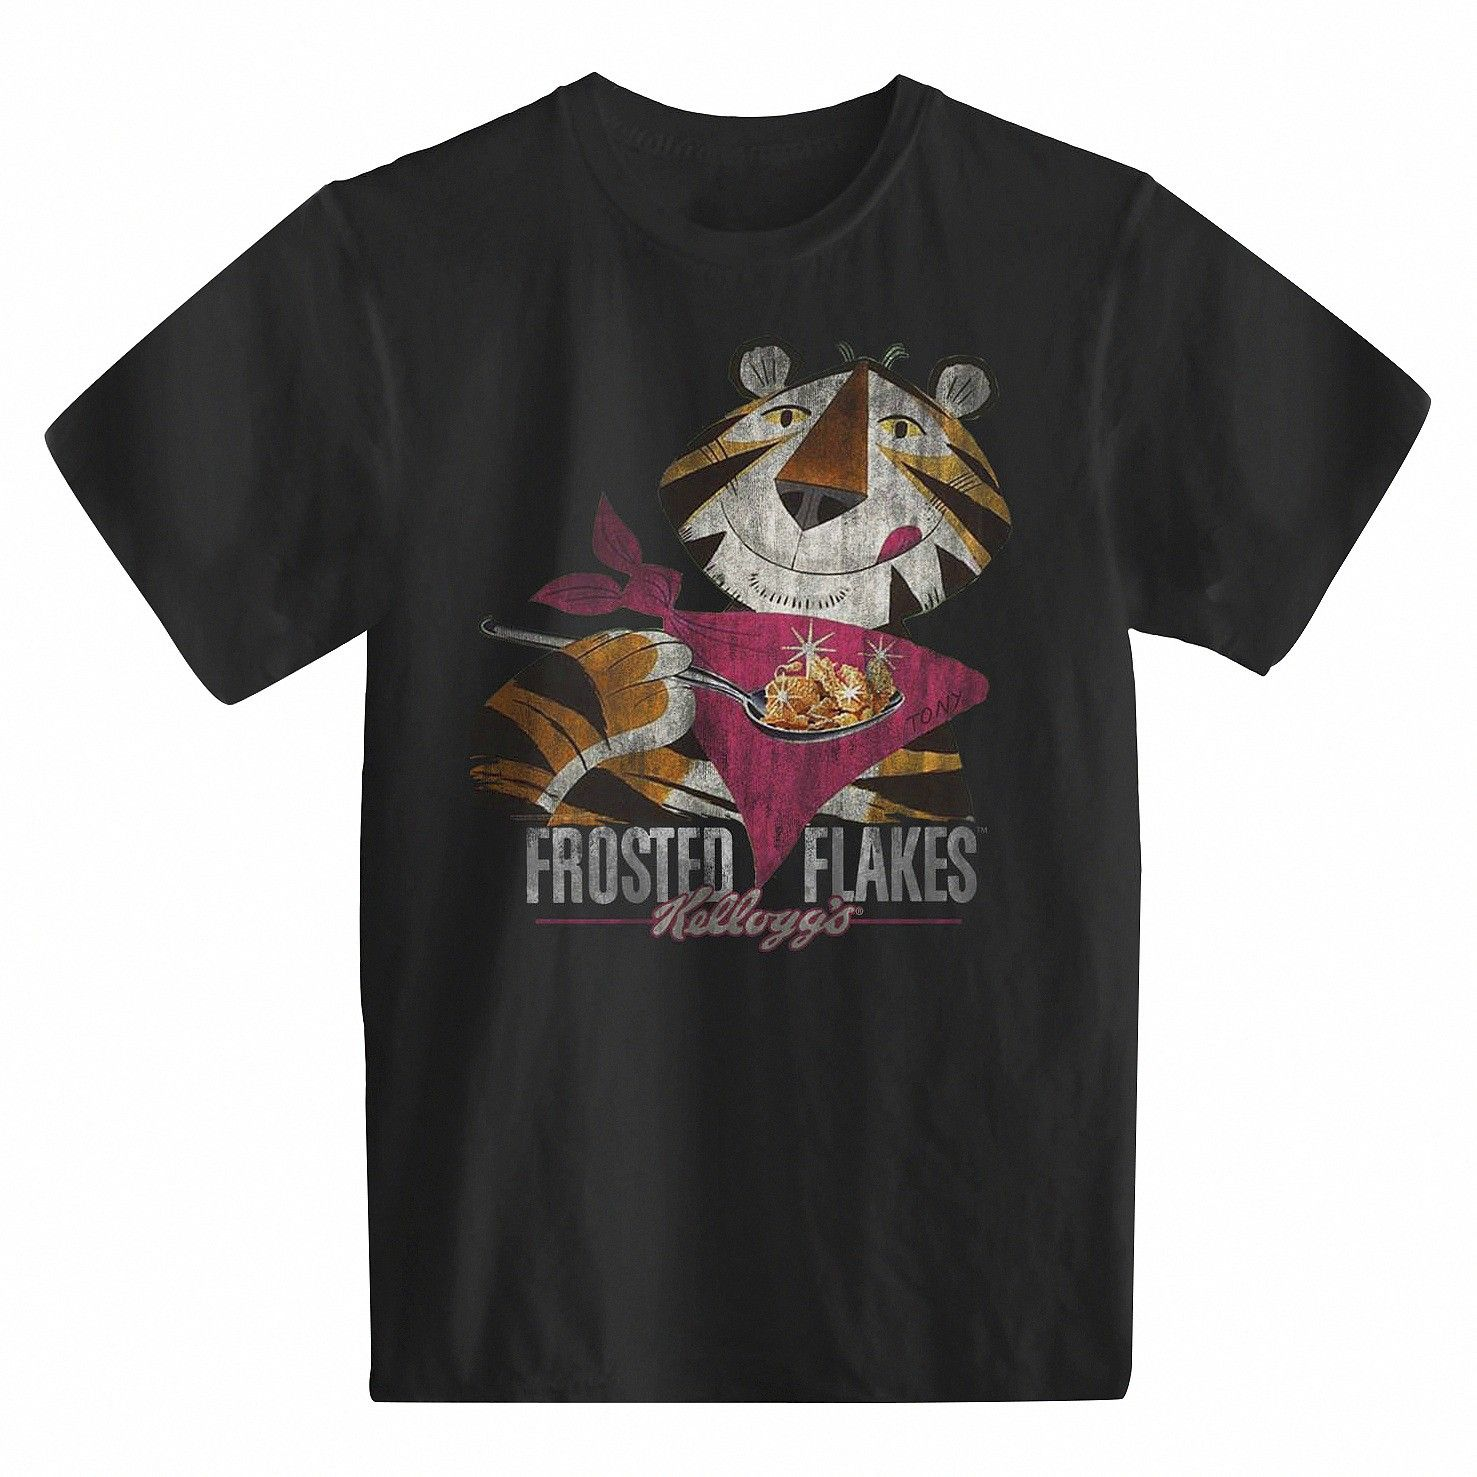 Men's Frosted Flakes T-Shirt